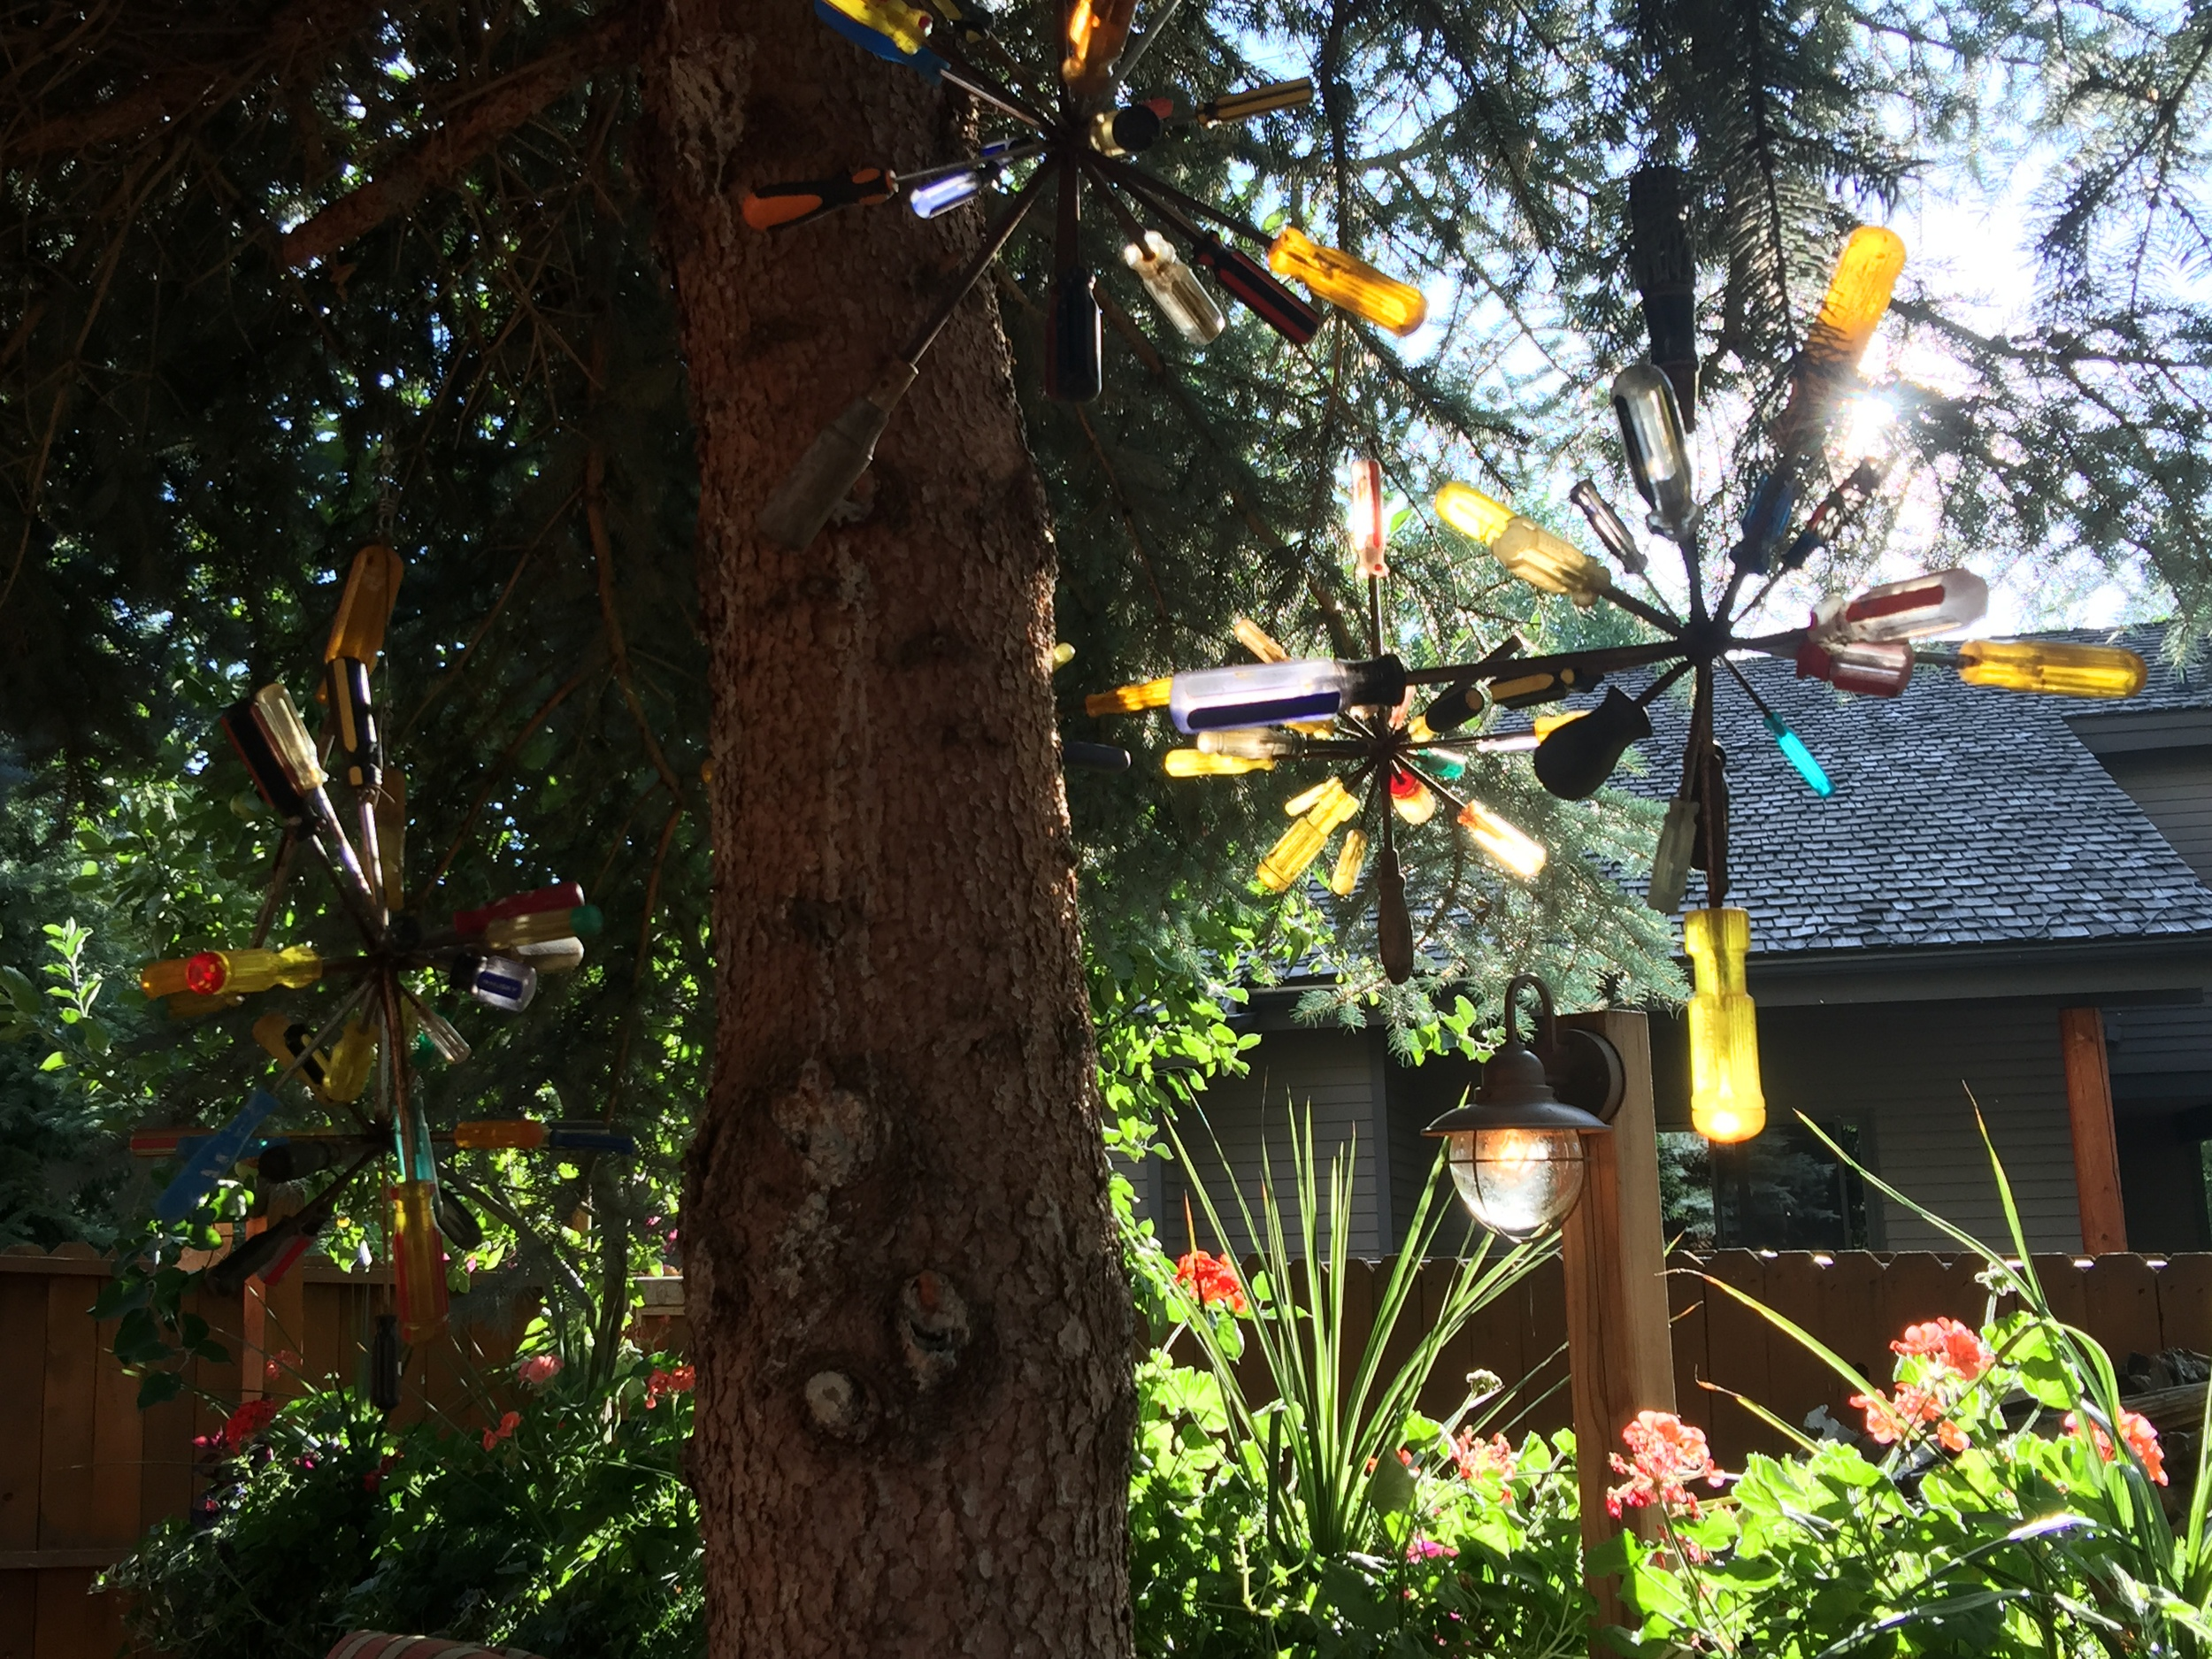 Art in the garden made from recycled materials